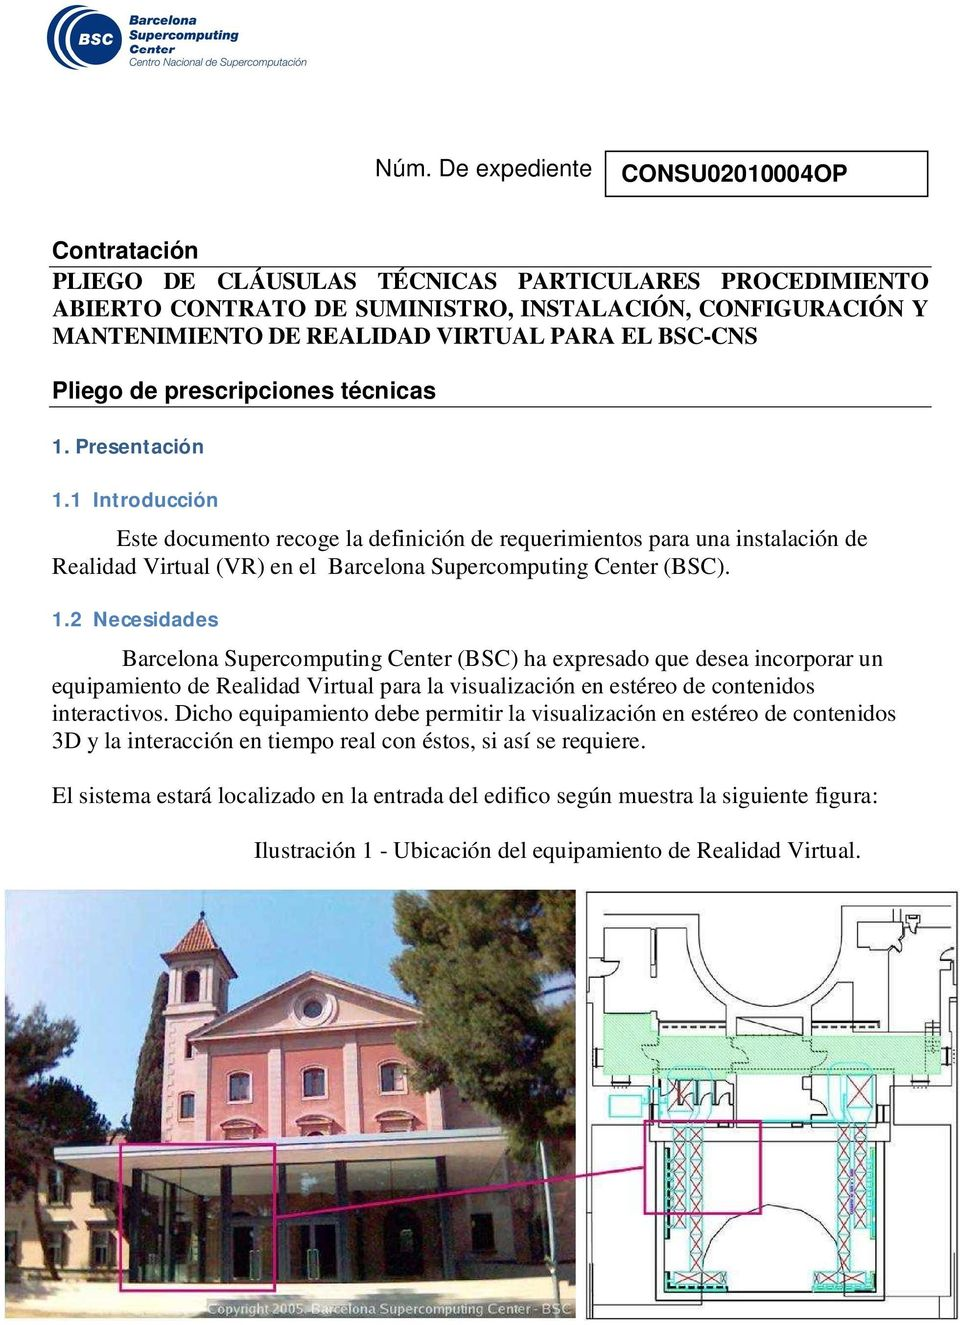 1 Introducción Este documento recoge la definición de requerimientos para una instalación de Realidad Virtual (VR) en el Barcelona Supercomputing Center (BSC). 1.